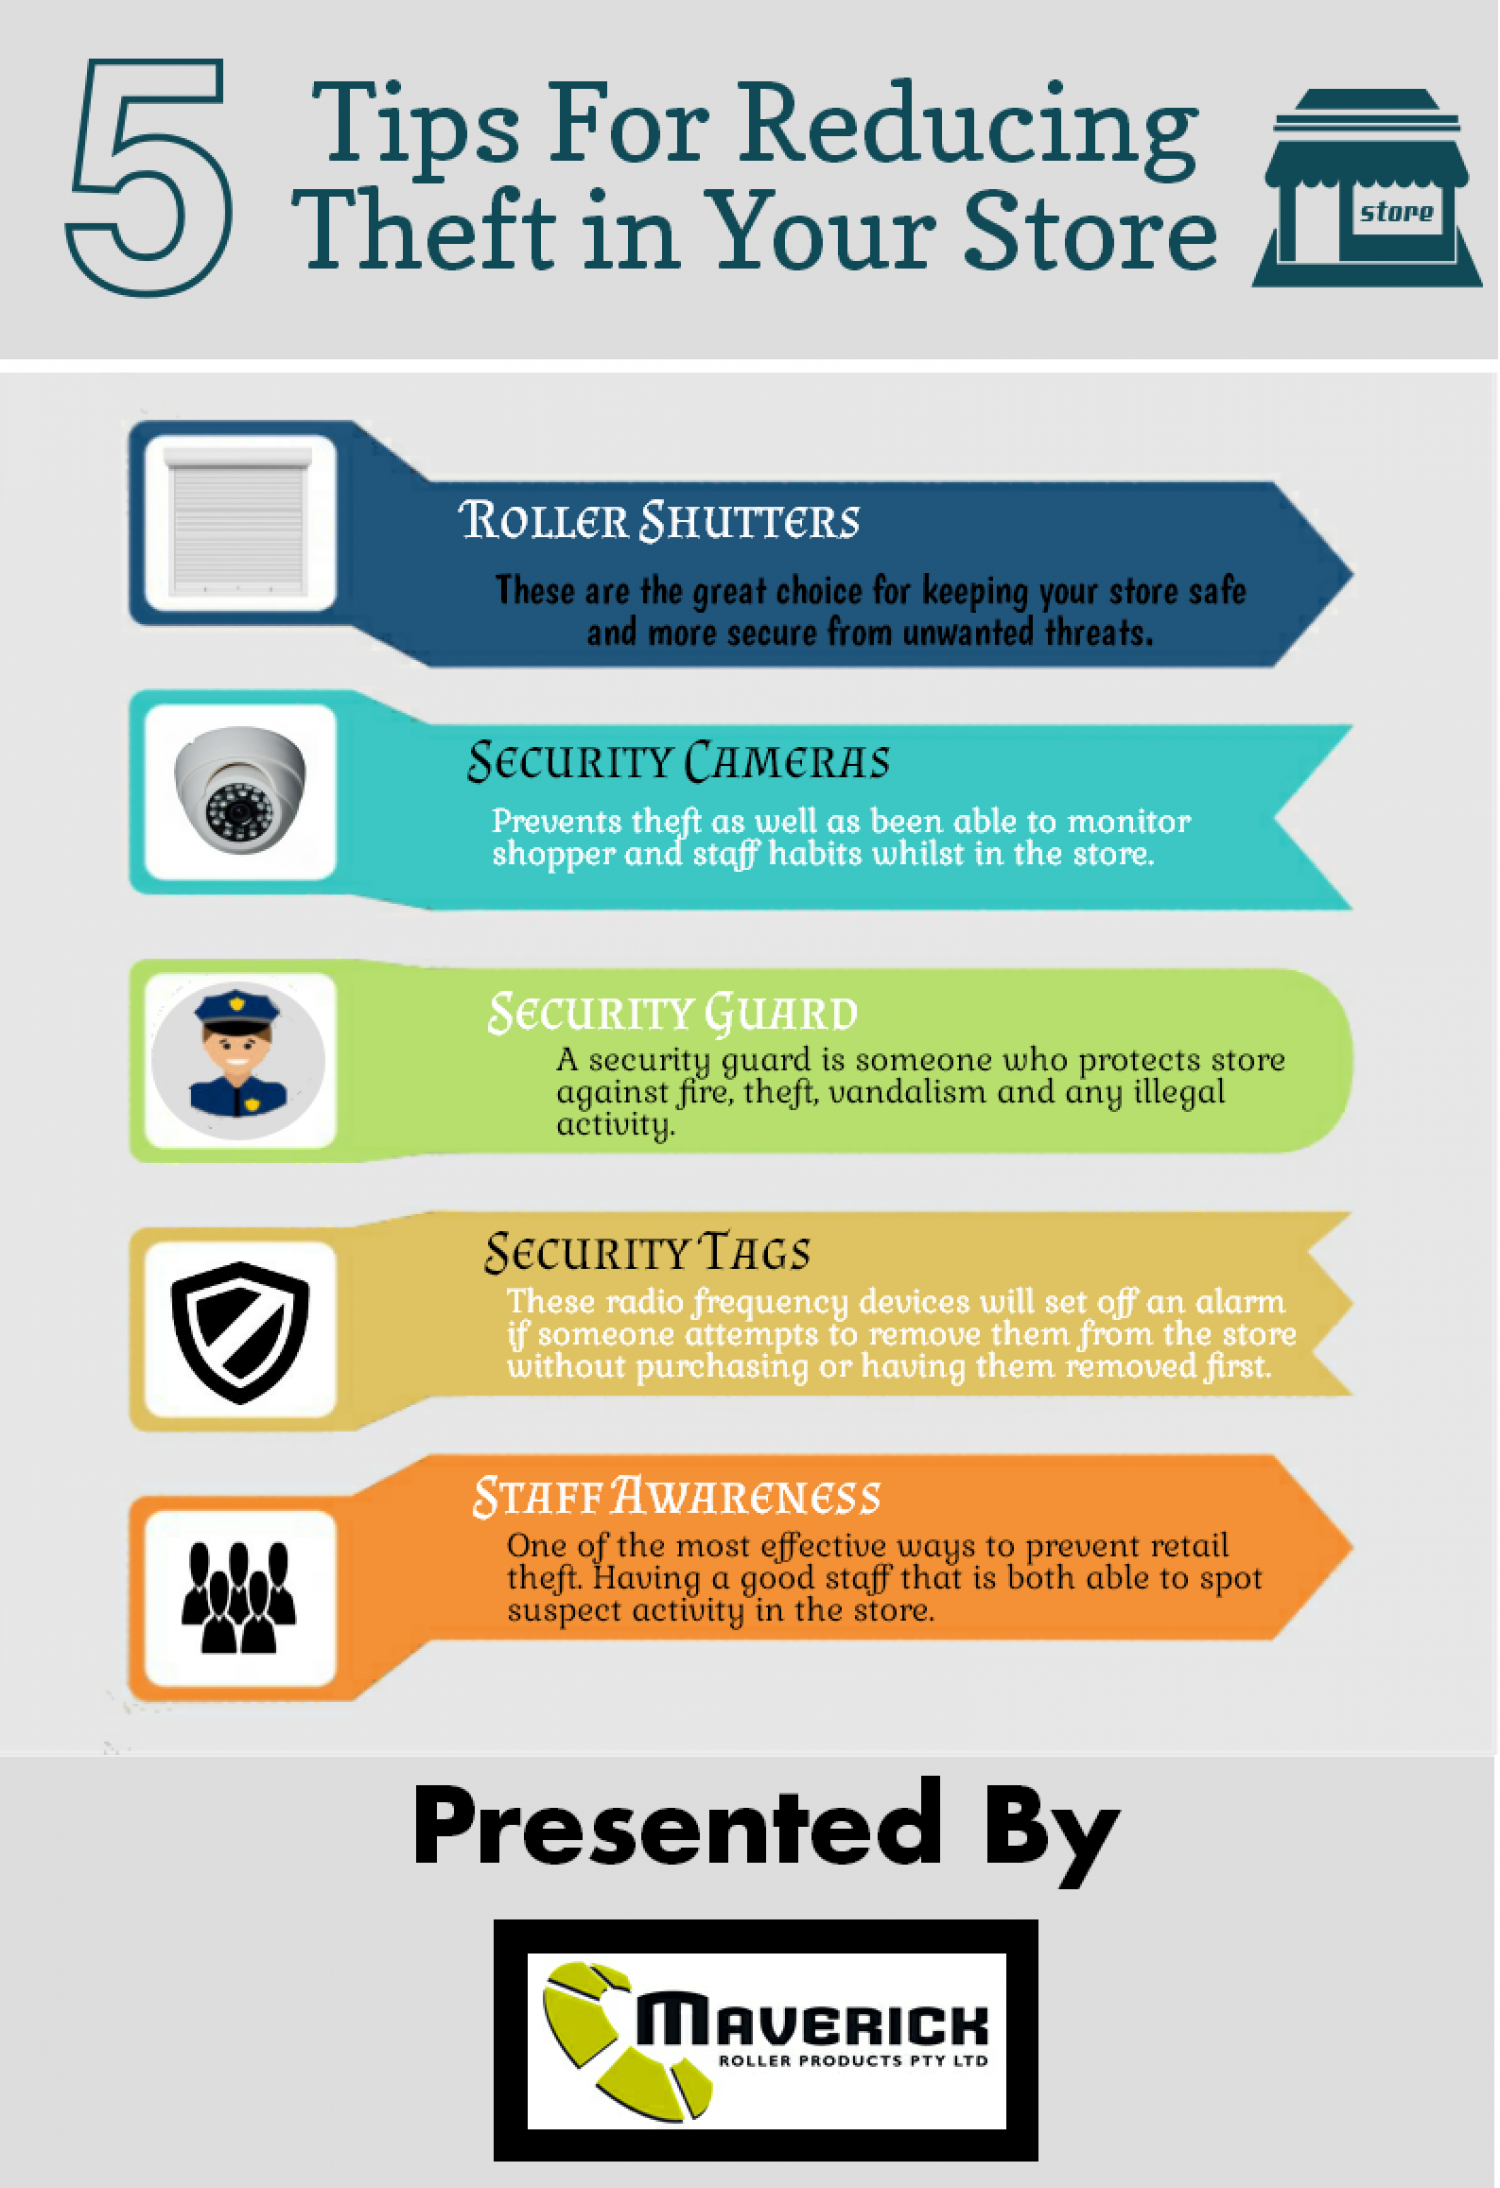 Five Tips For Reducing Theft in Your Store  Infographic